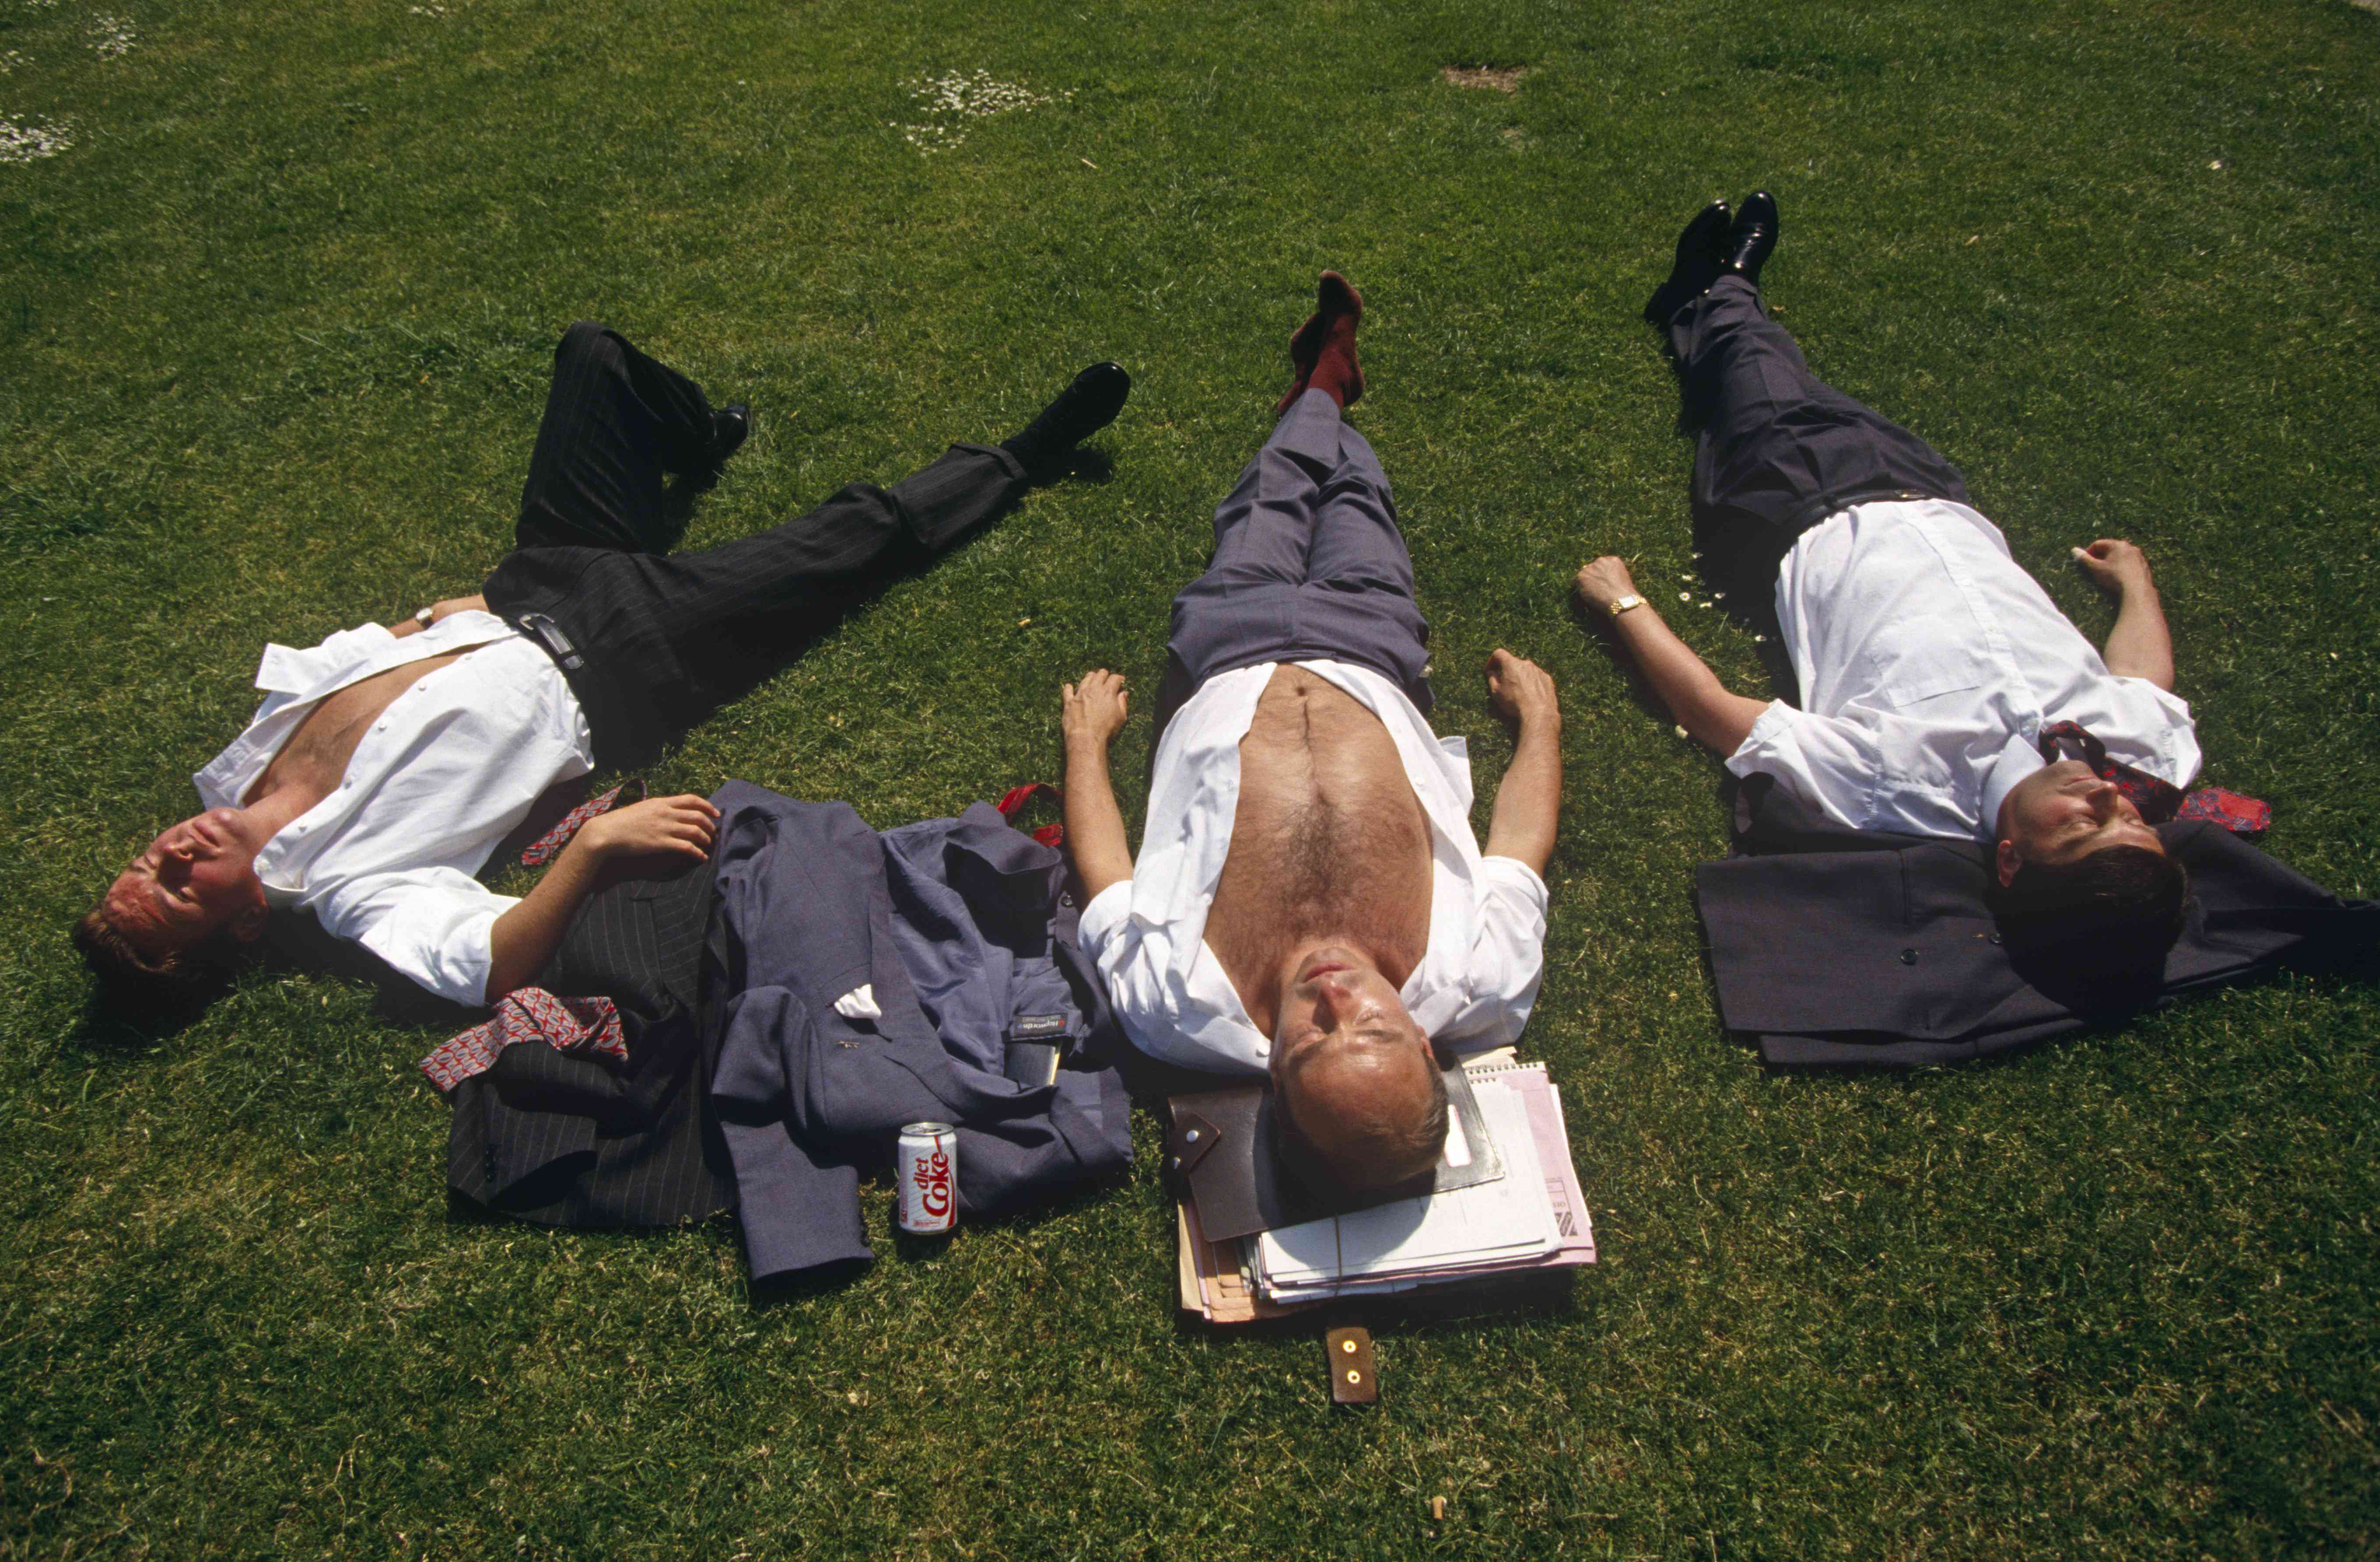 Three workers sunbathing during their lunchtime